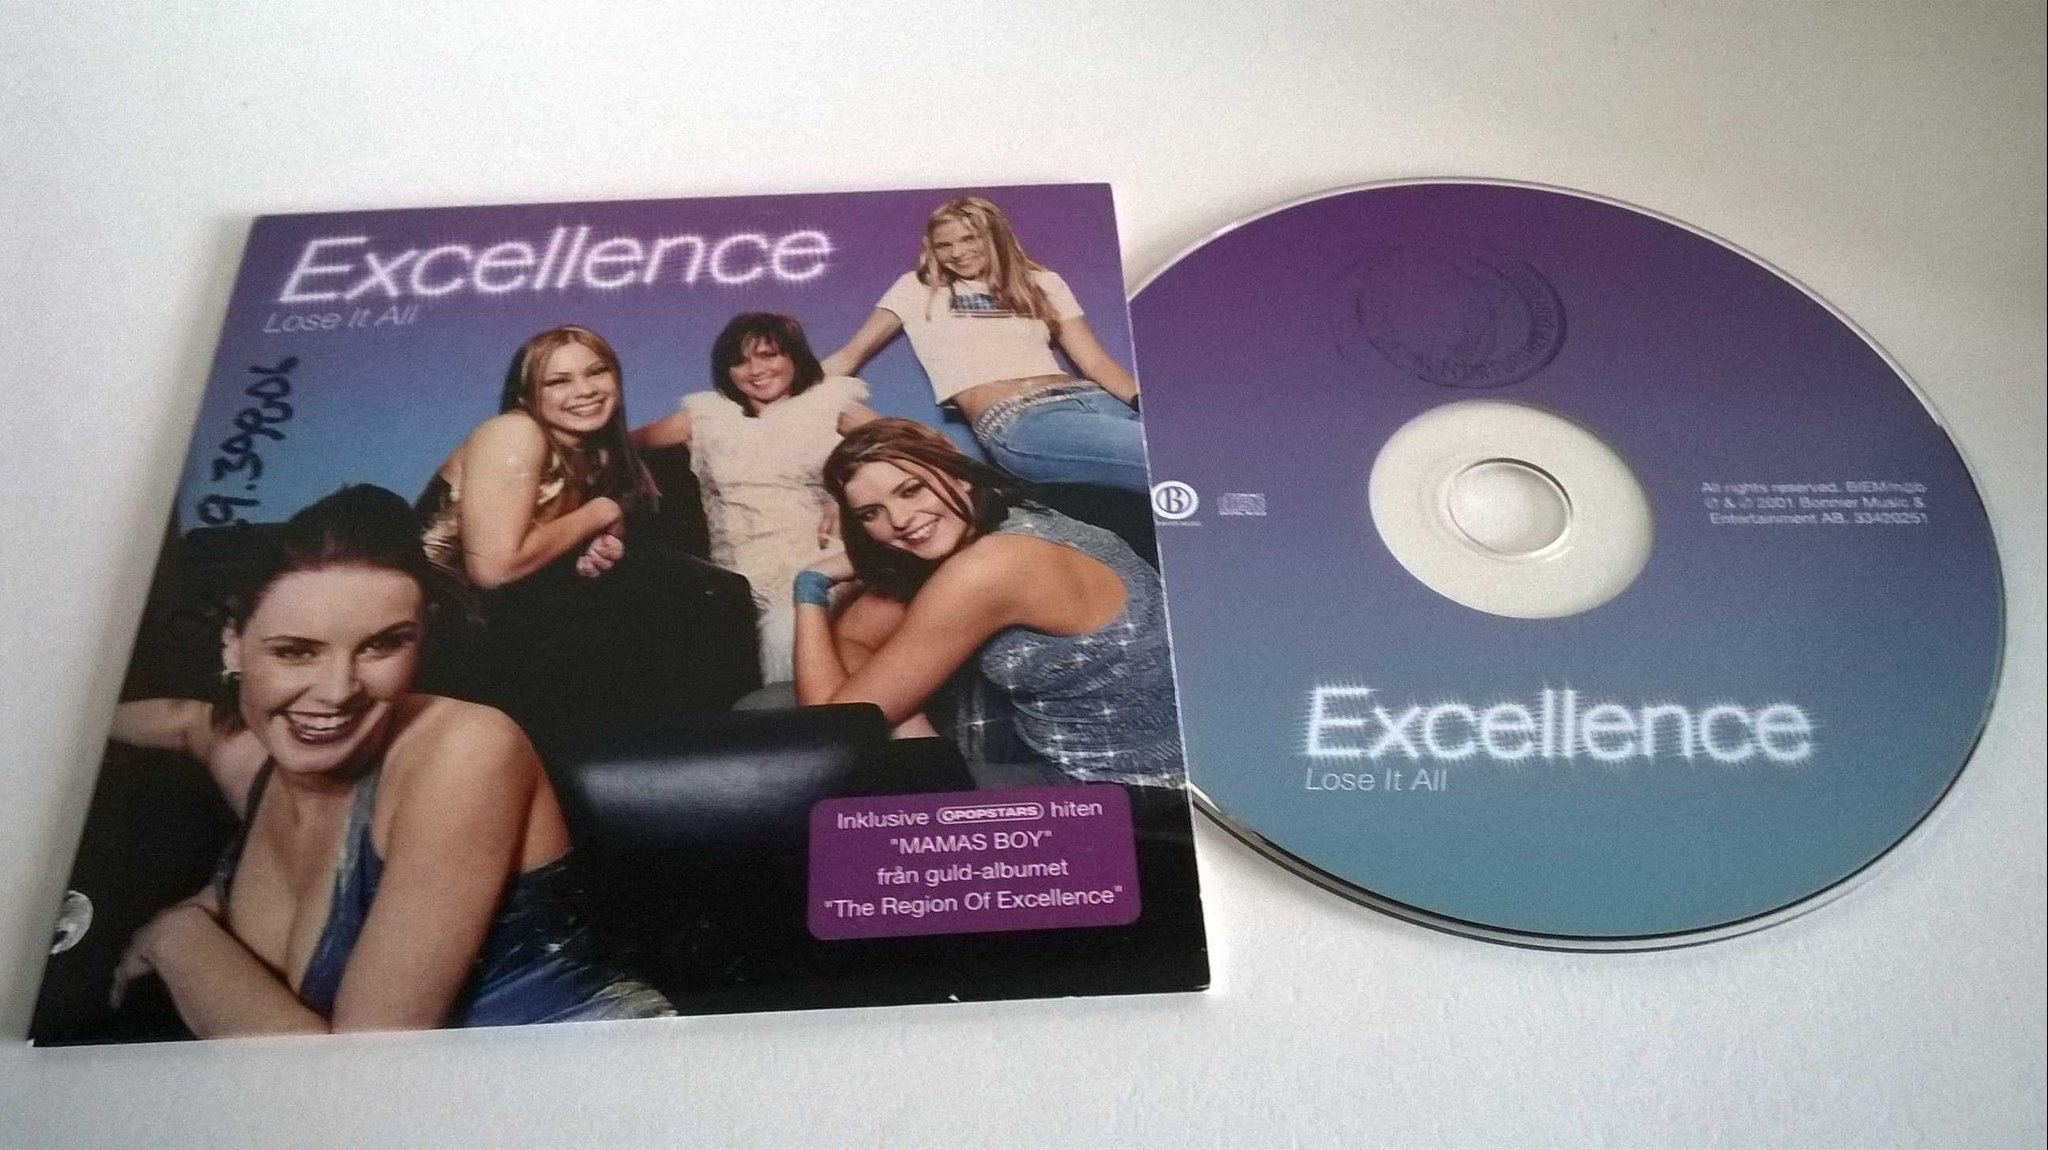 Excellence - Lose it all, single CD, promo stämplad